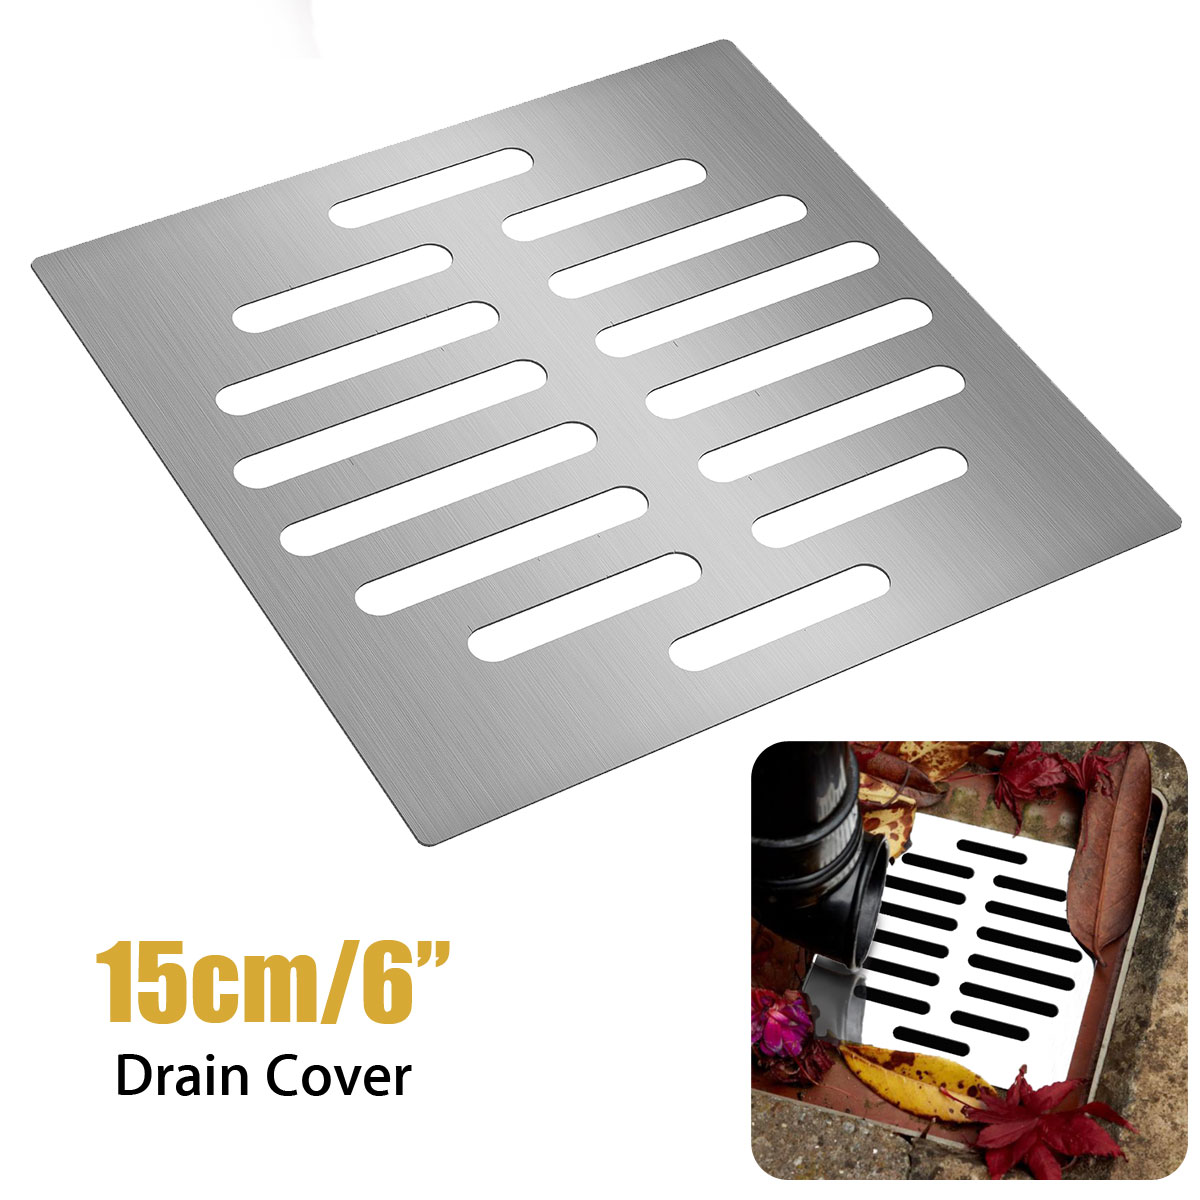 Xueqin Shower Drain Thick Stainless Steel Floor Drain Cover Strainer  Bathroom Bath Accessories Garden Drains Cover 15X15cm In Drains From Home  Improvement ...